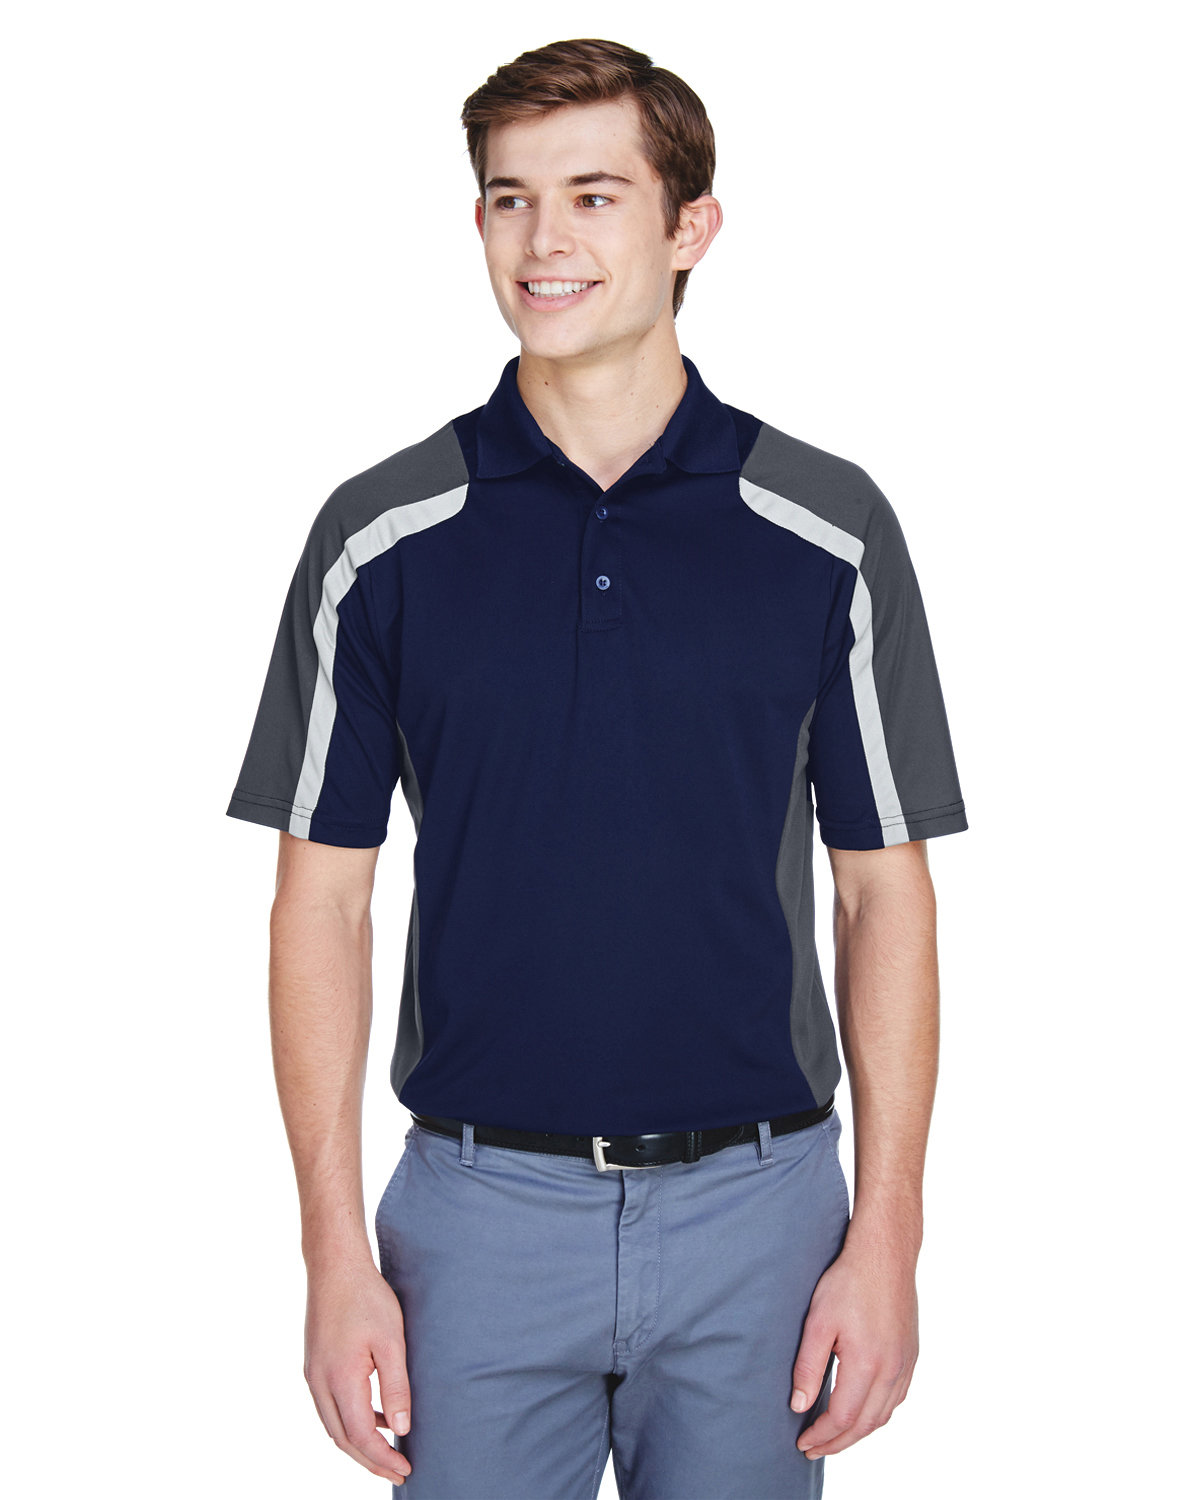 Extreme Men's Eperformance™ Strike Colorblock Snag Protection Polo CLASSIC NAVY